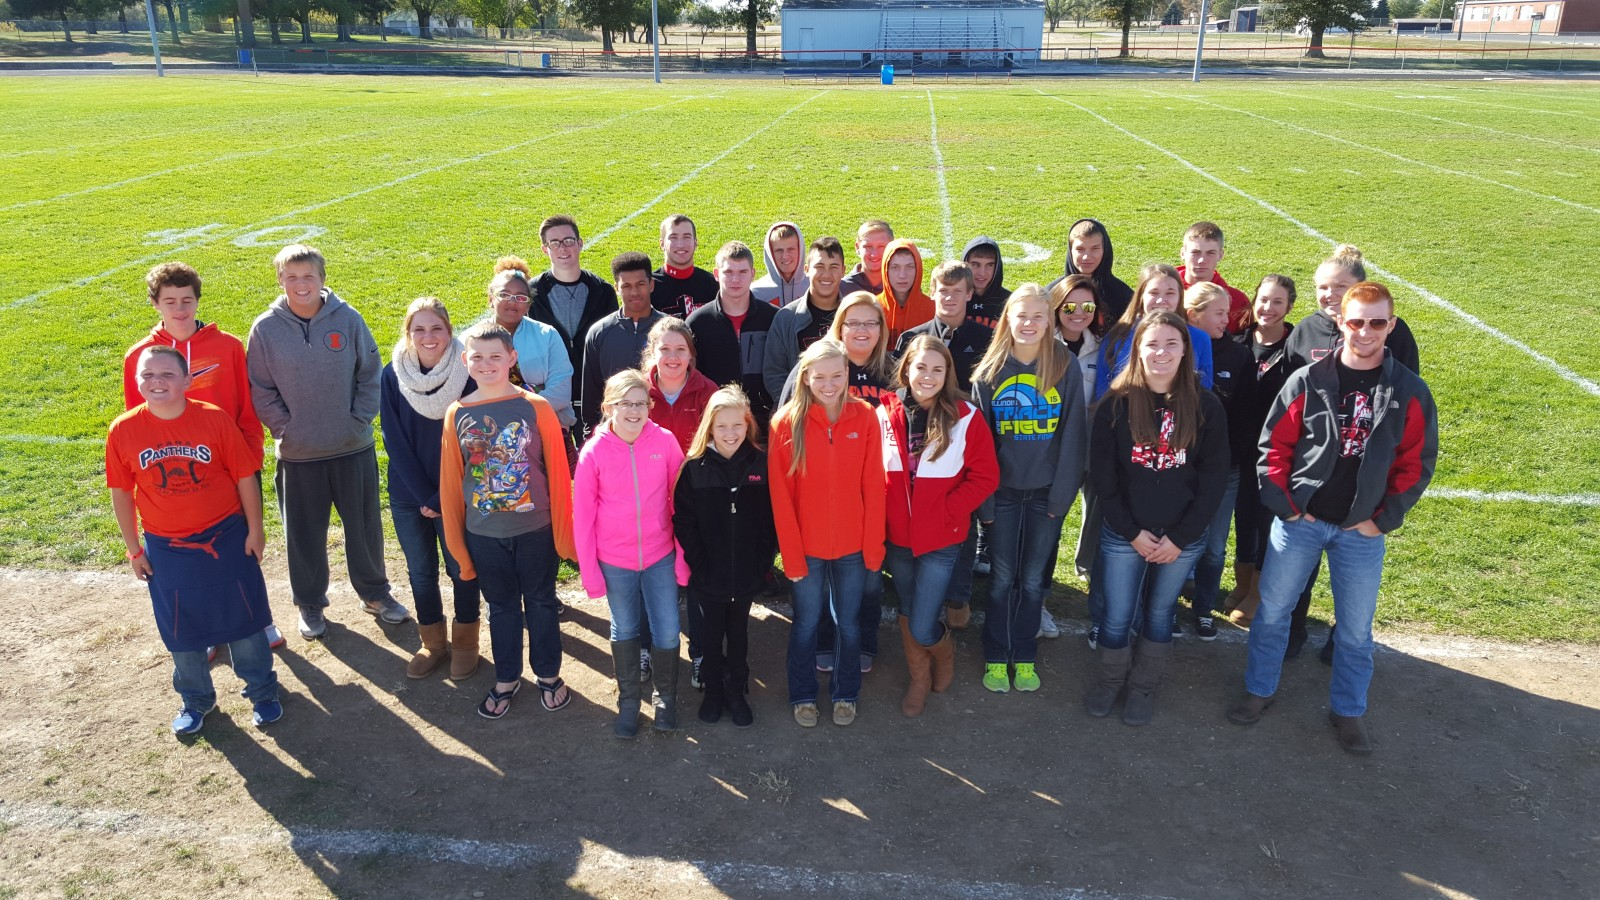 Vandalia & Pana HS Athletes join together for FCA event